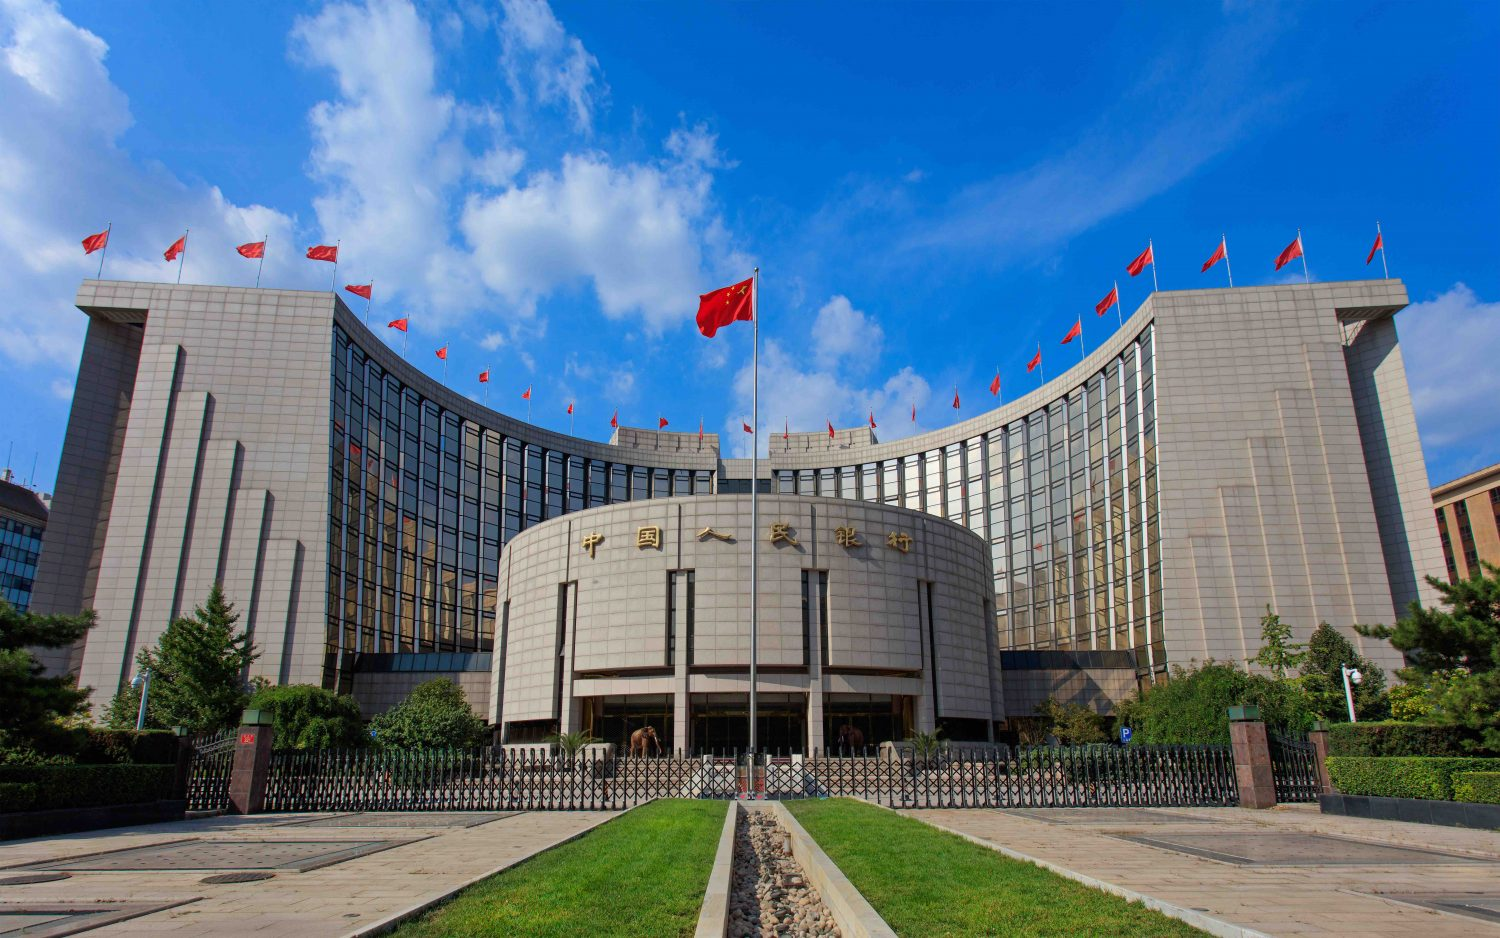 China's Digital Currency Is Ready, Central Bank Says